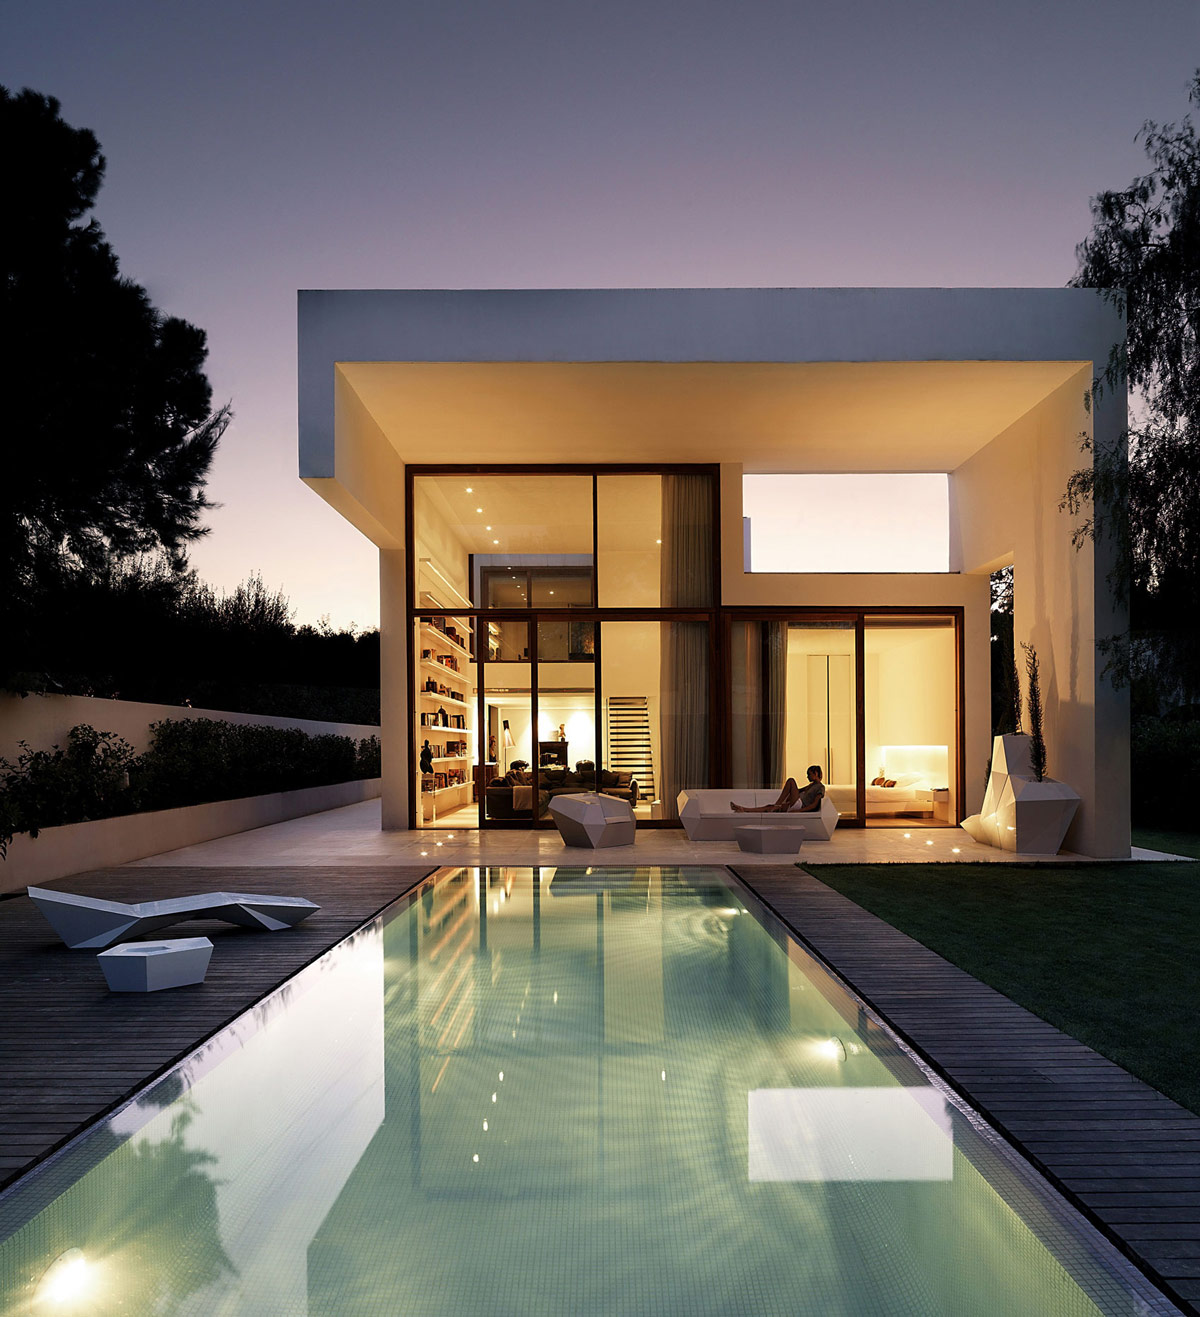 Contemporary home in valencia spain Contemporary housing